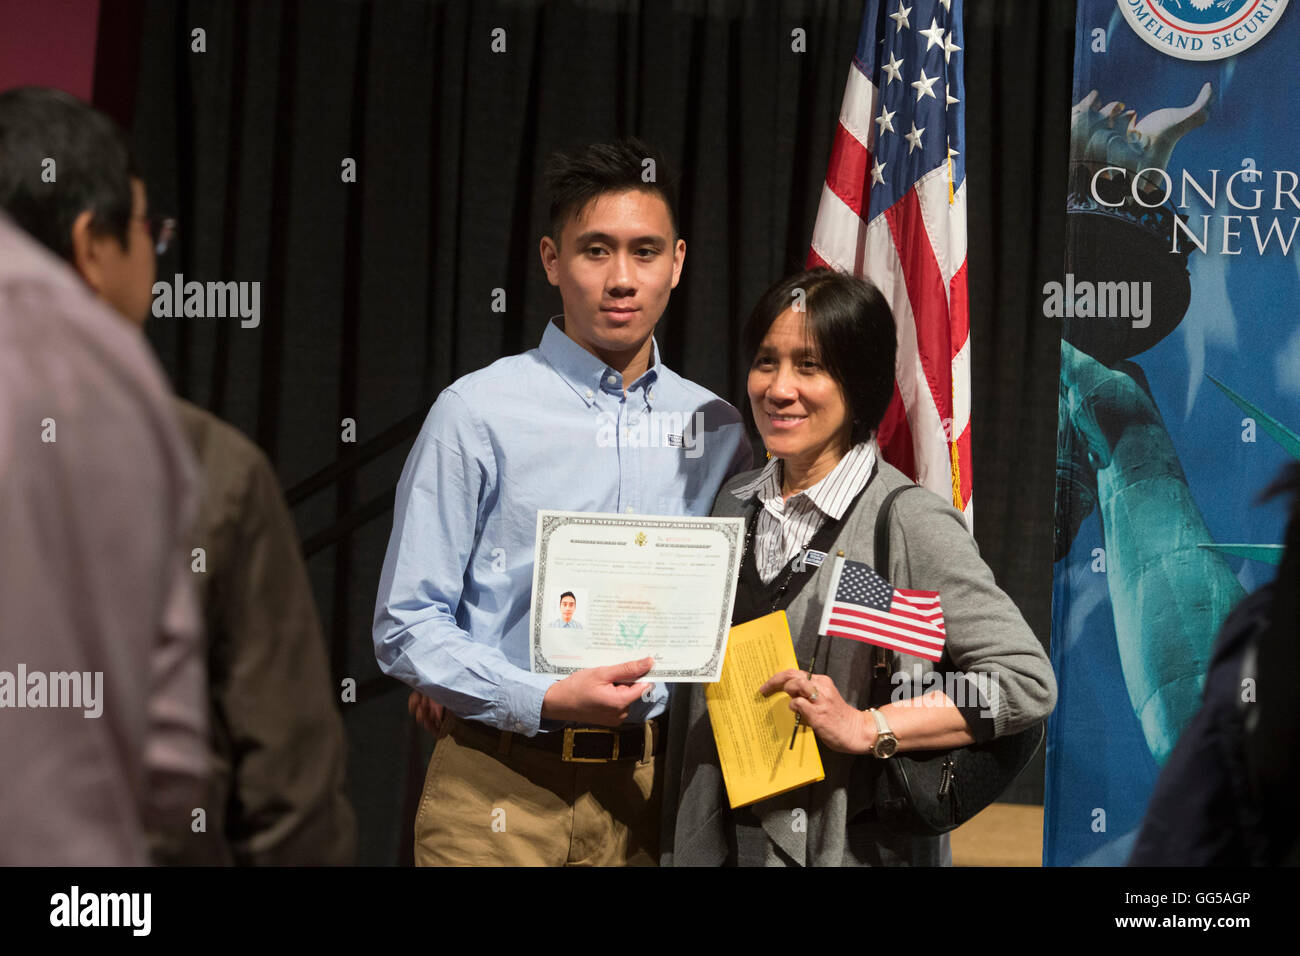 New United States citizen poses with citizenship certificate